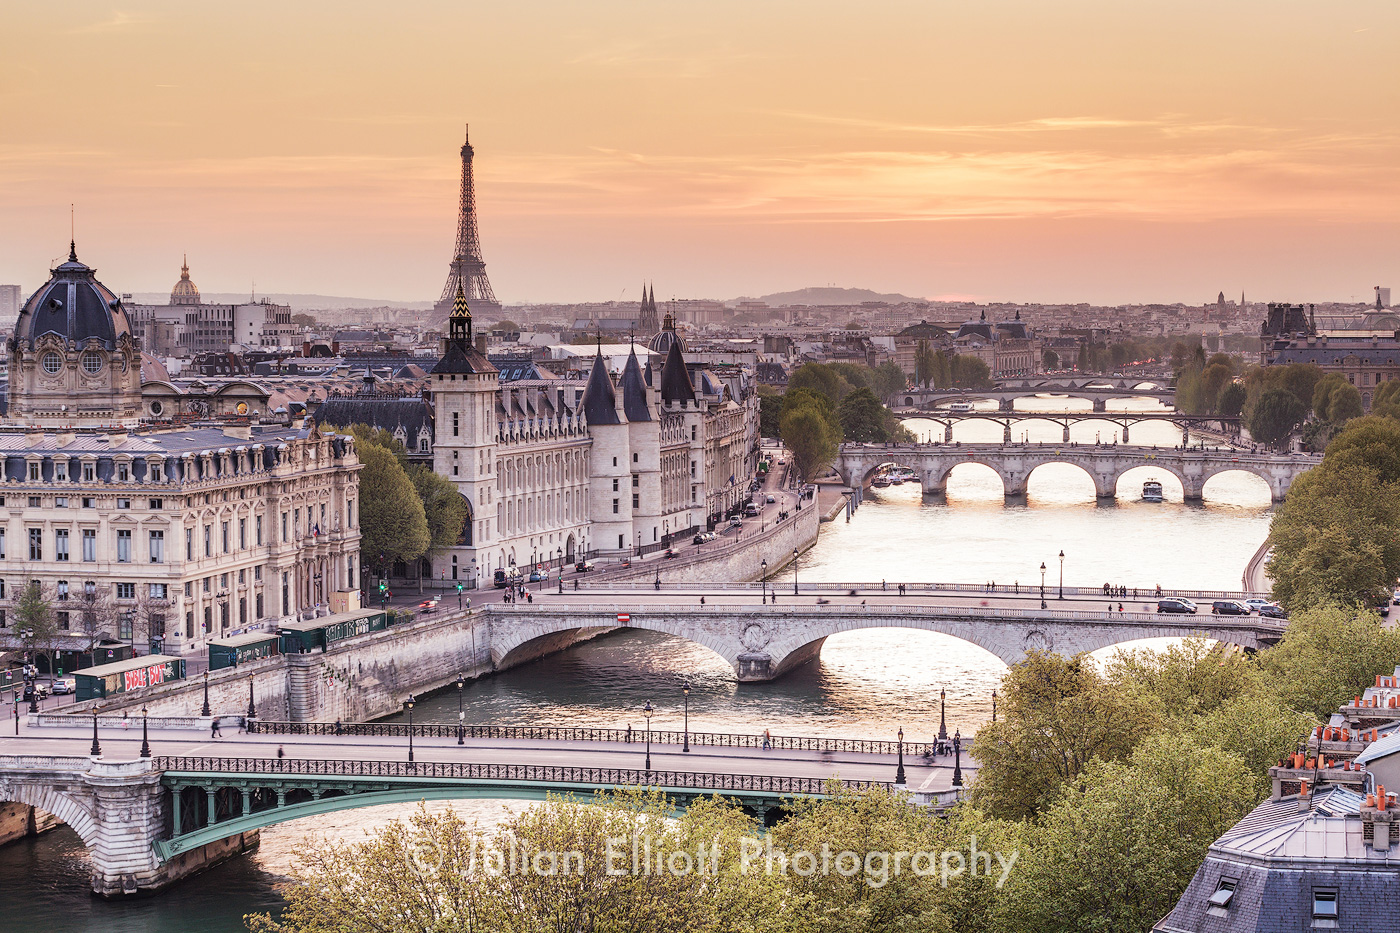 The city of Paris at sunset.